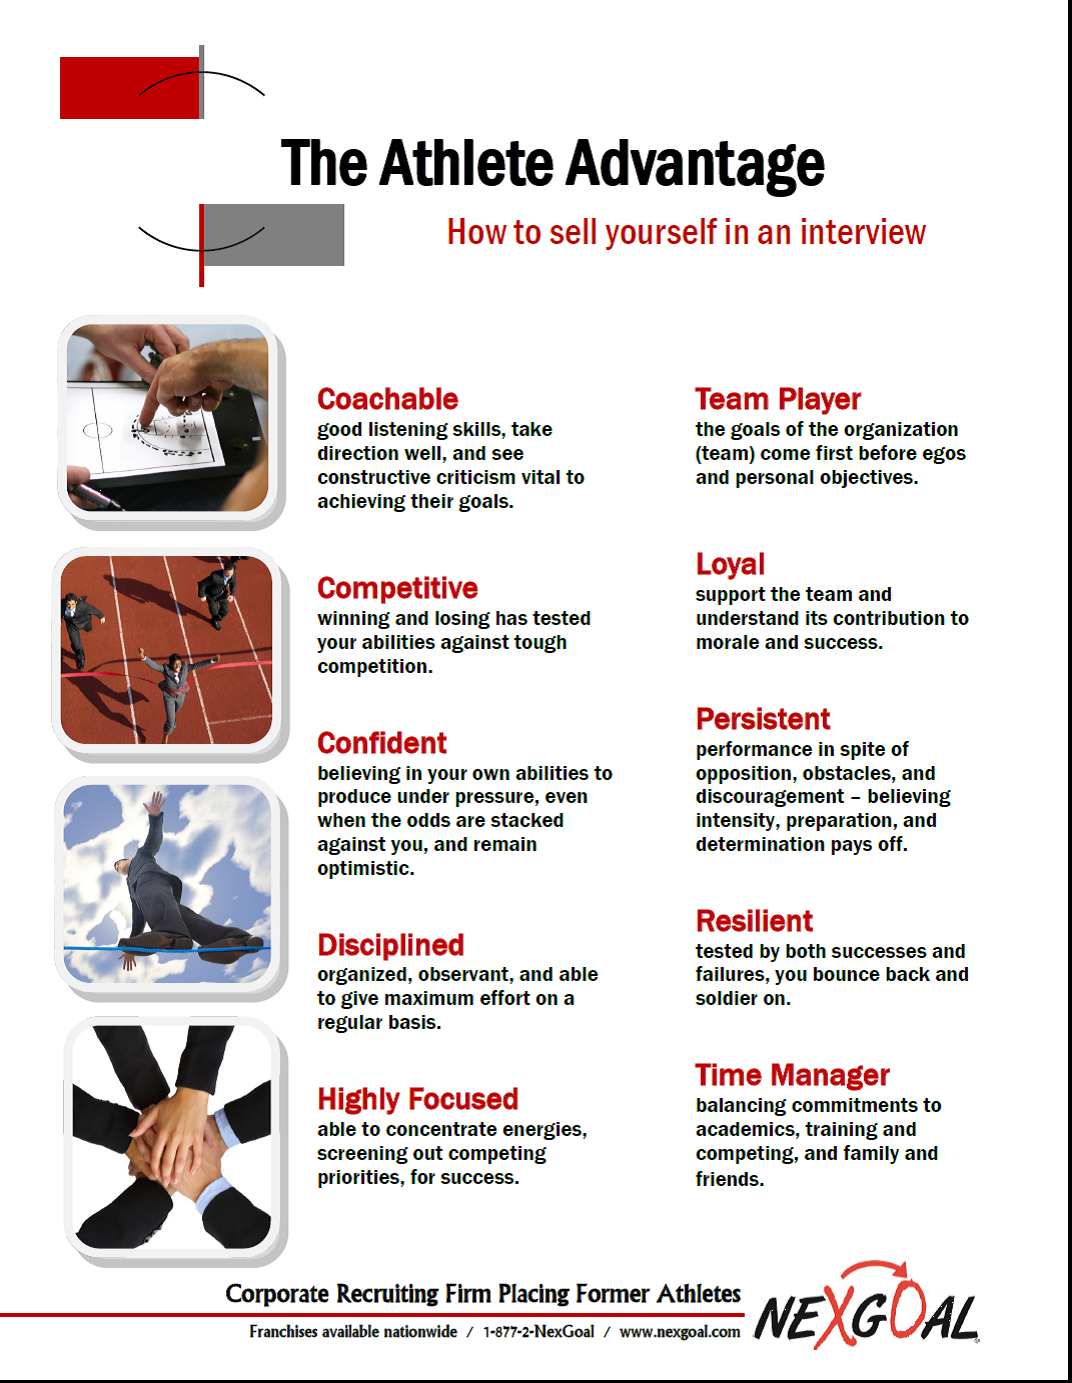 The Athlete Advantage